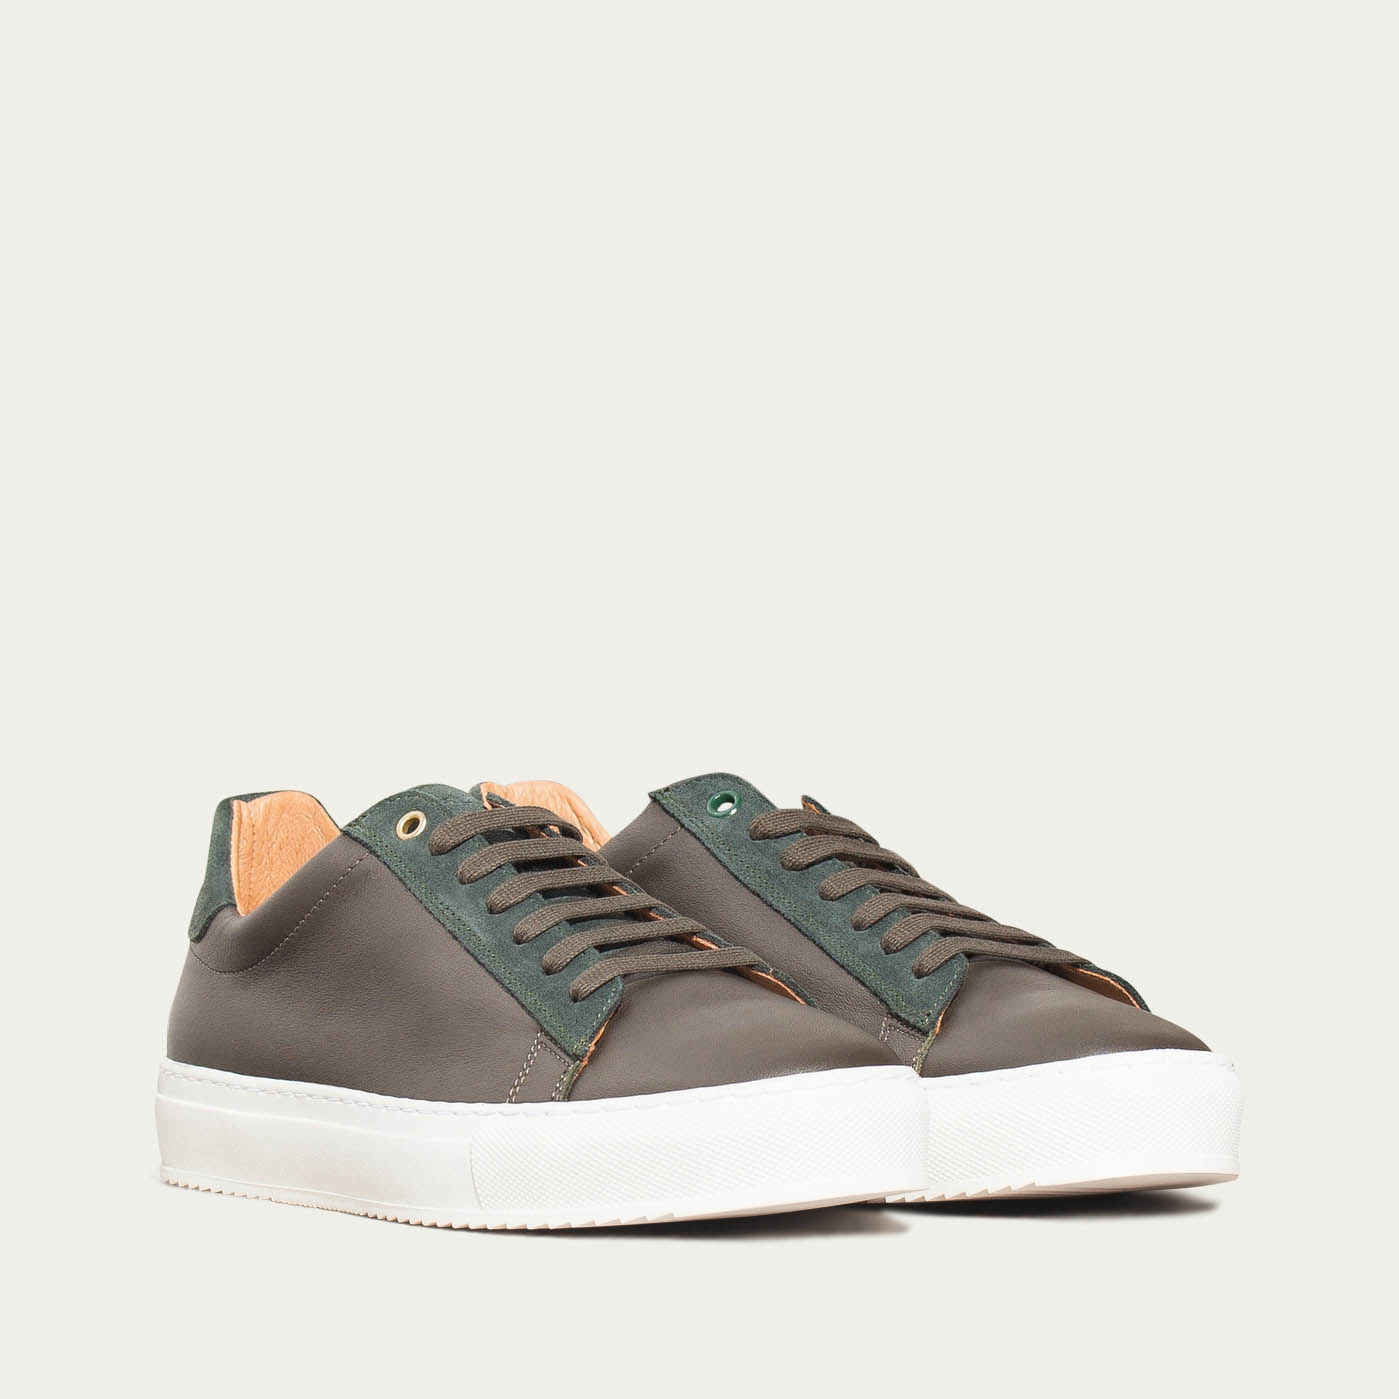 Army Green Leather Taranta Sneakers   | Bombinate